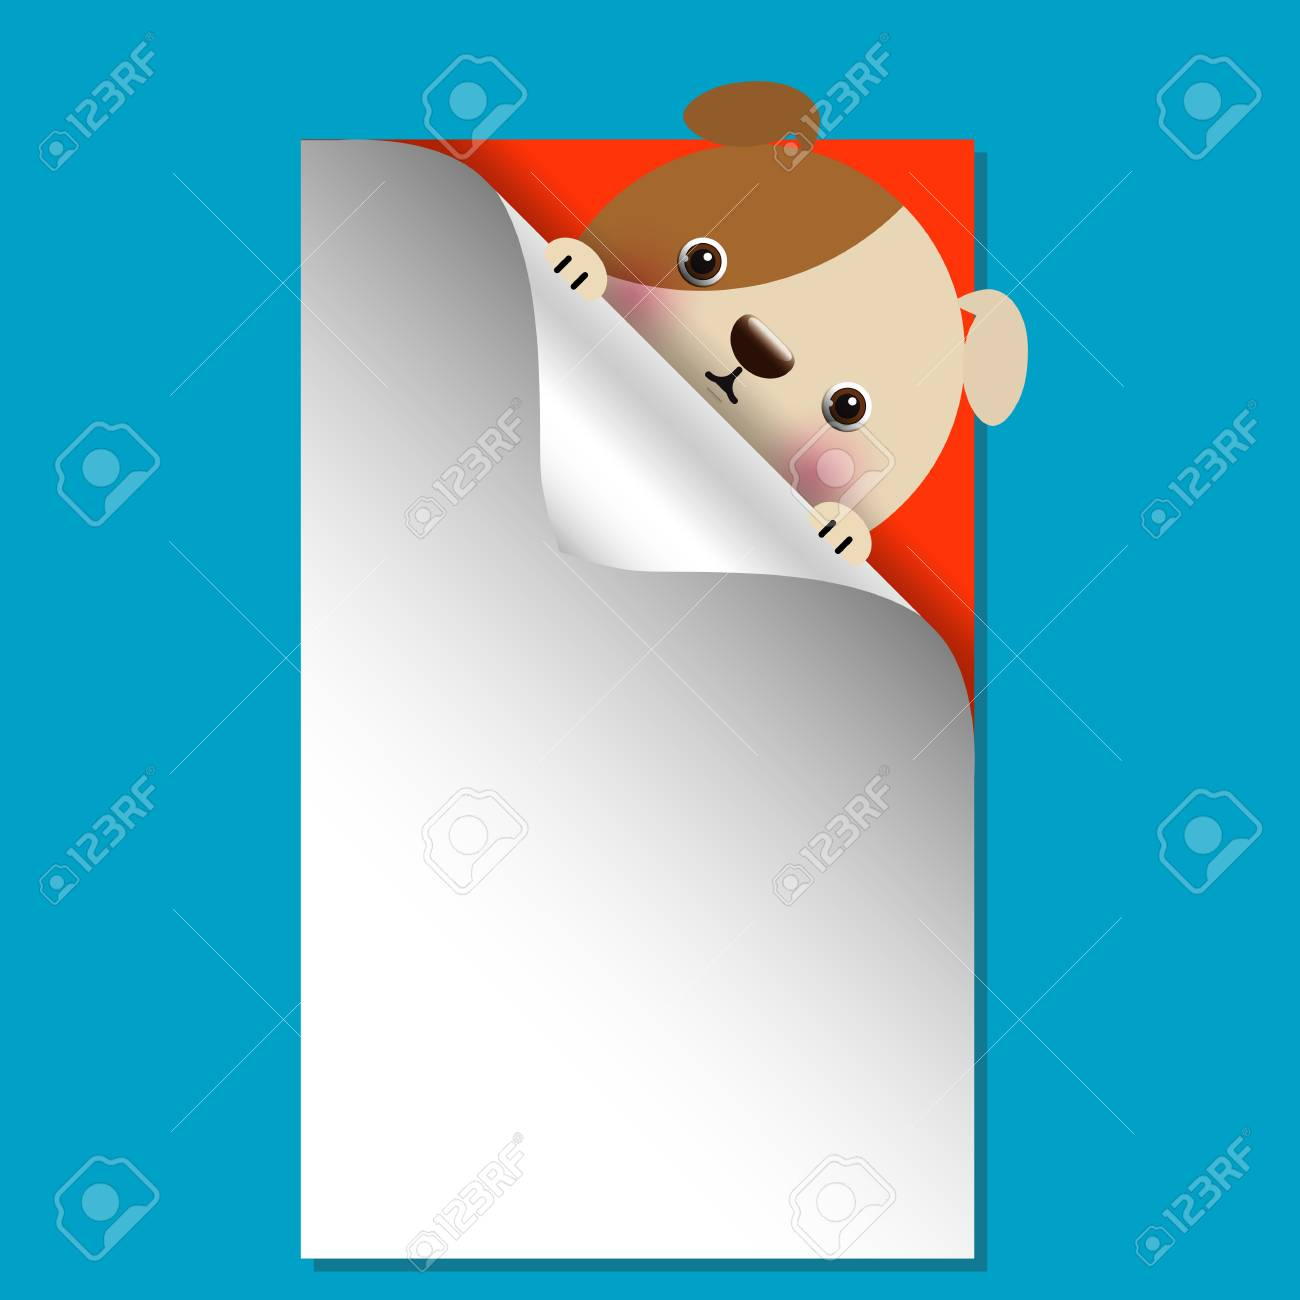 Vector illustration of cute dog with place for text Stock Vector - 19157064